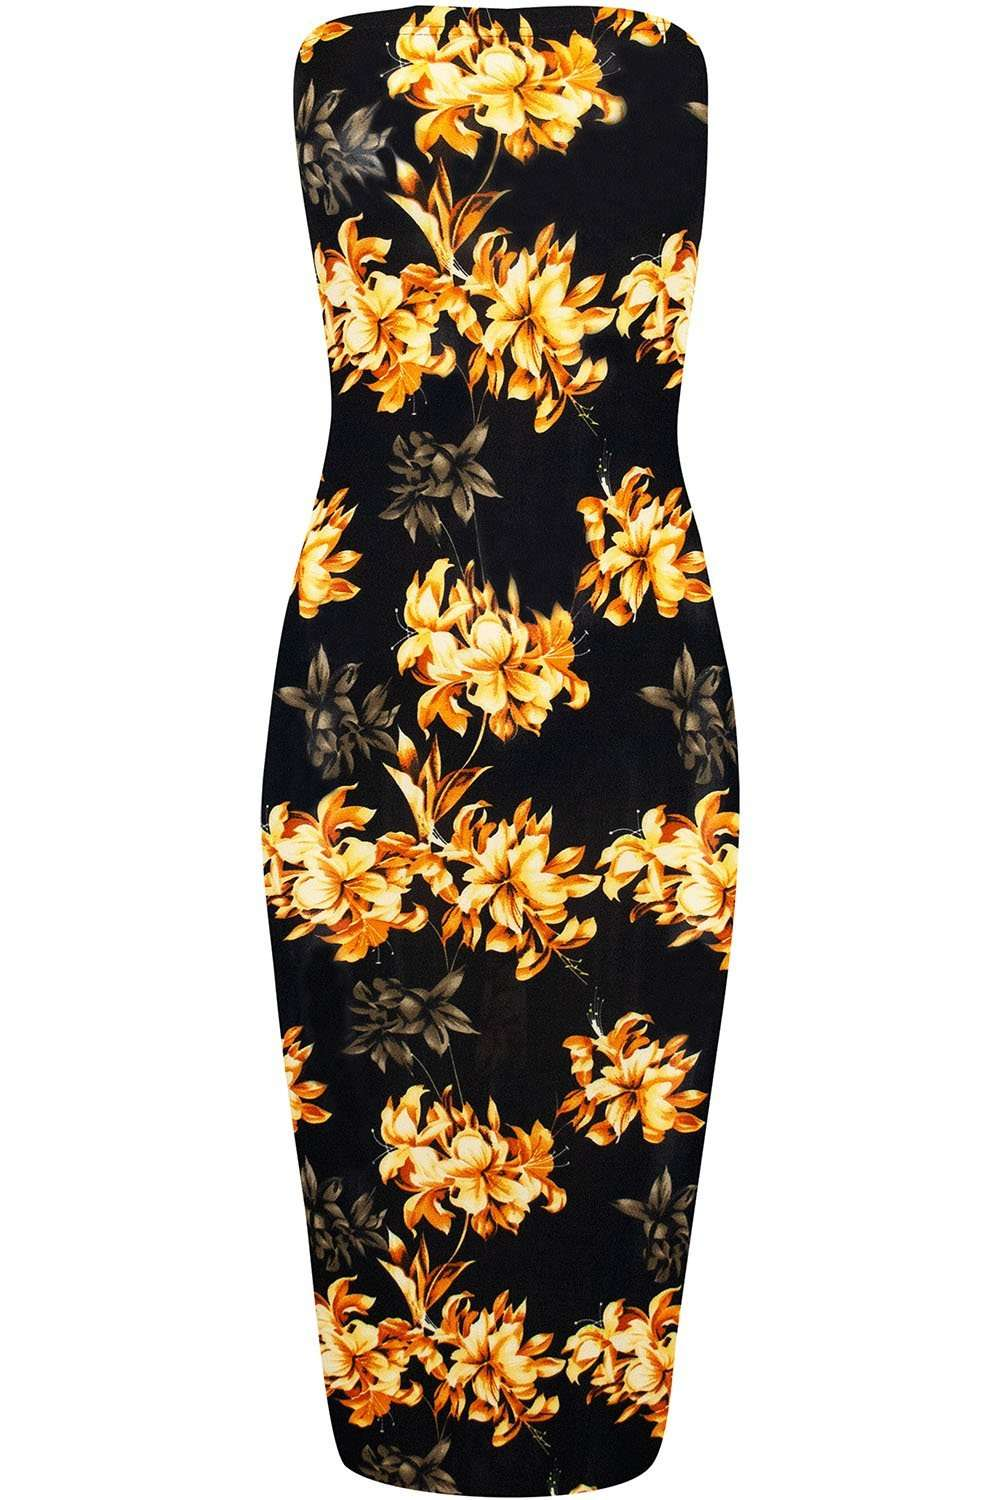 Tropical Print Bandeau Yellow Floral Midi Tube Dress - bejealous-com